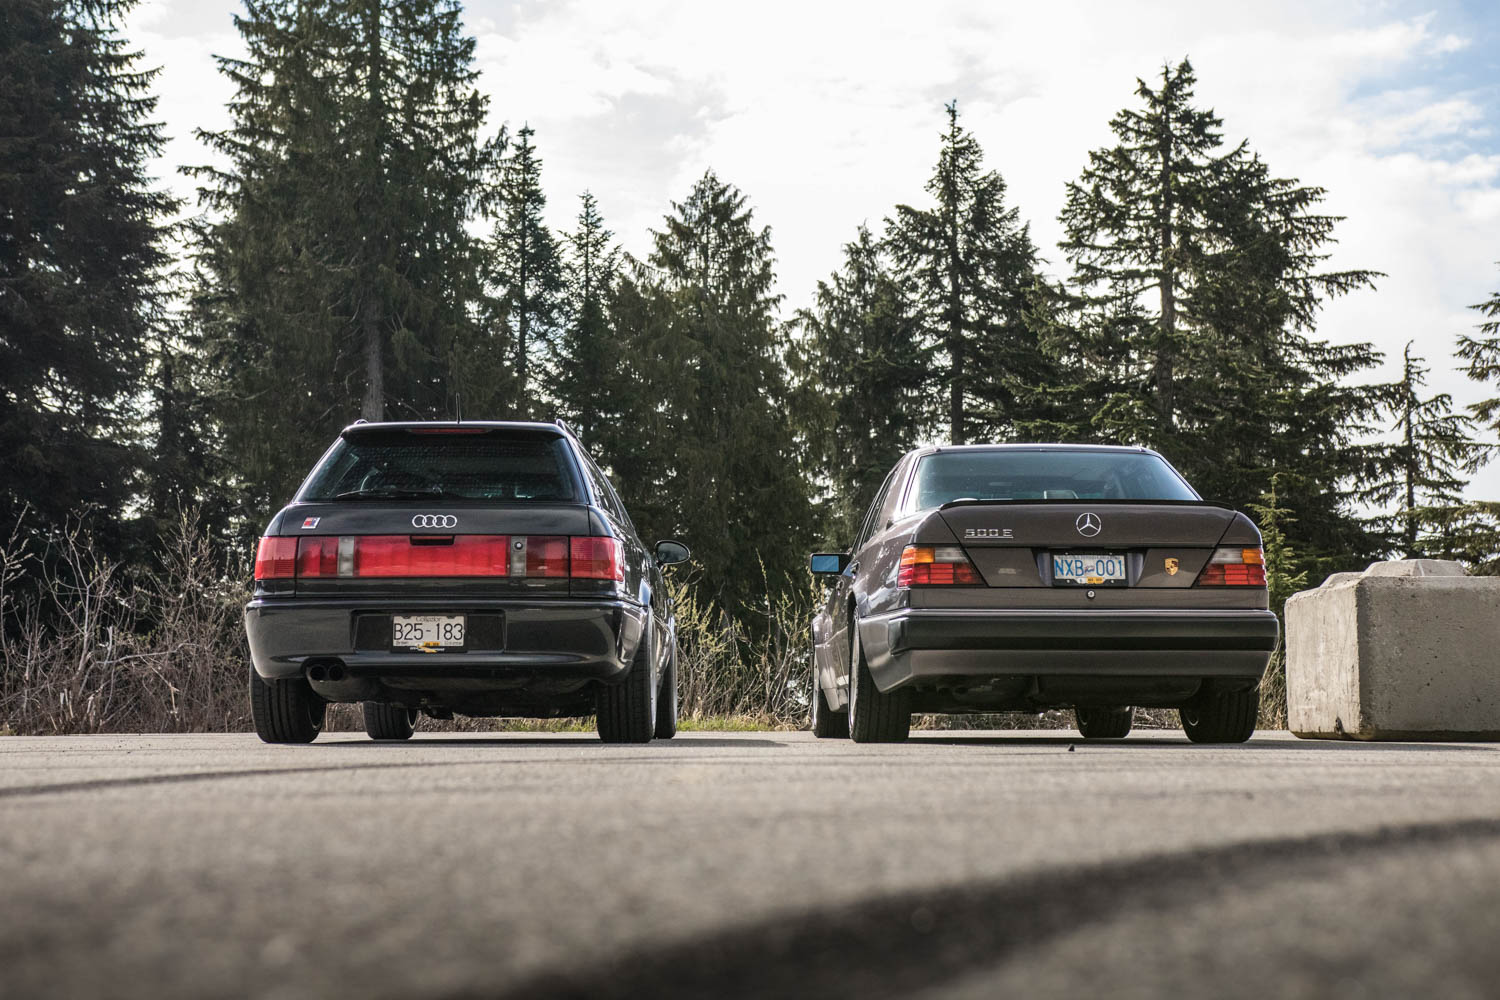 Mercedes-Benz 500E and Audi RS2 rear